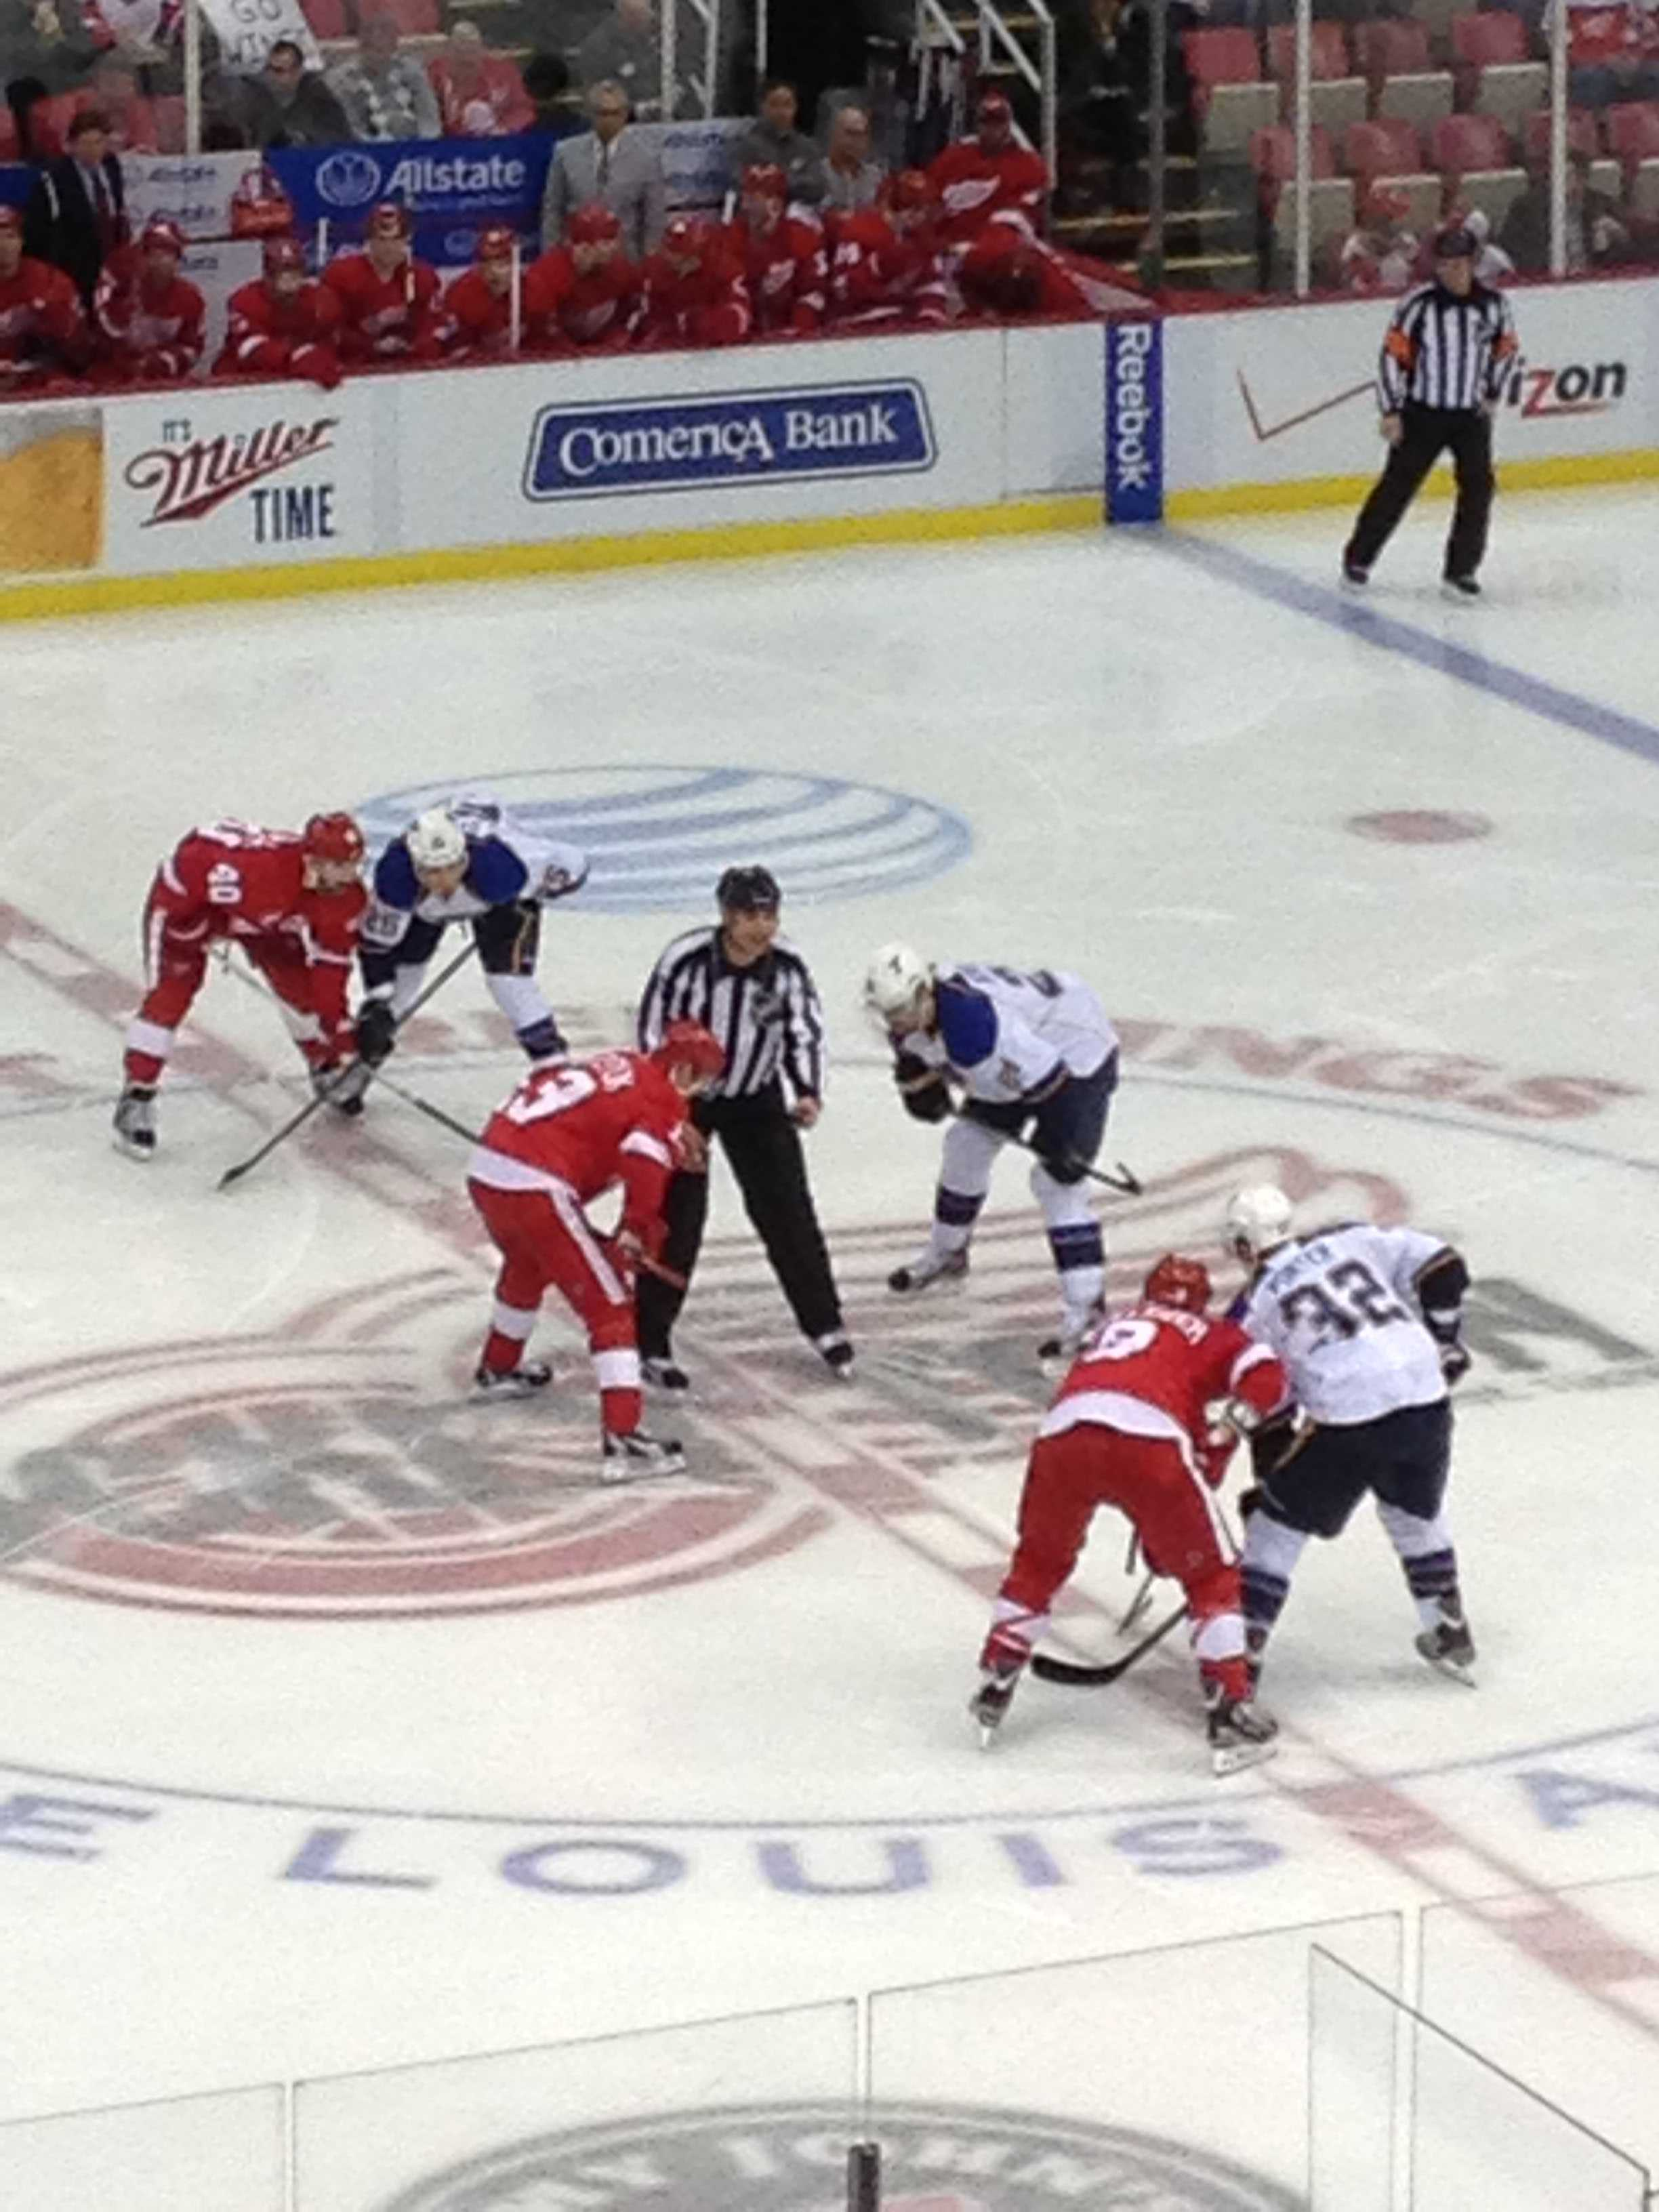 The Red Wings face off against the Chicago Blackhawks in the Western Conference Semifinals